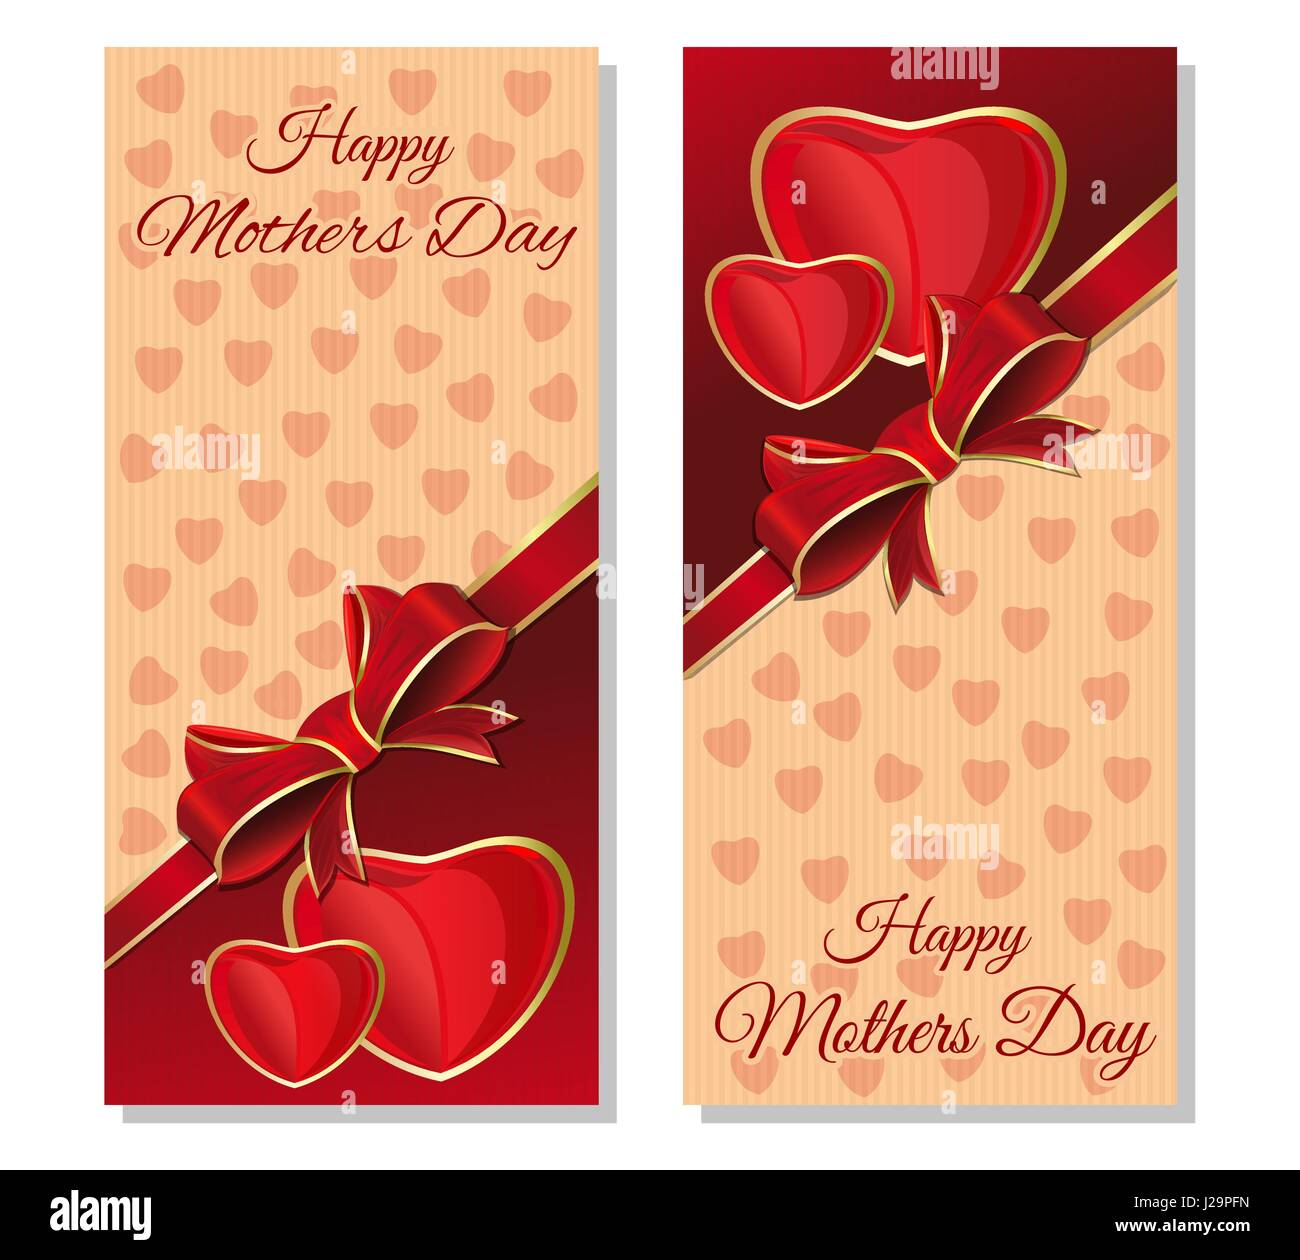 Happy mothers day greeting cards set festive red and beige stock happy mothers day greeting cards set festive red and beige background with design elements for mothers day vector flyer template kristyandbryce Images